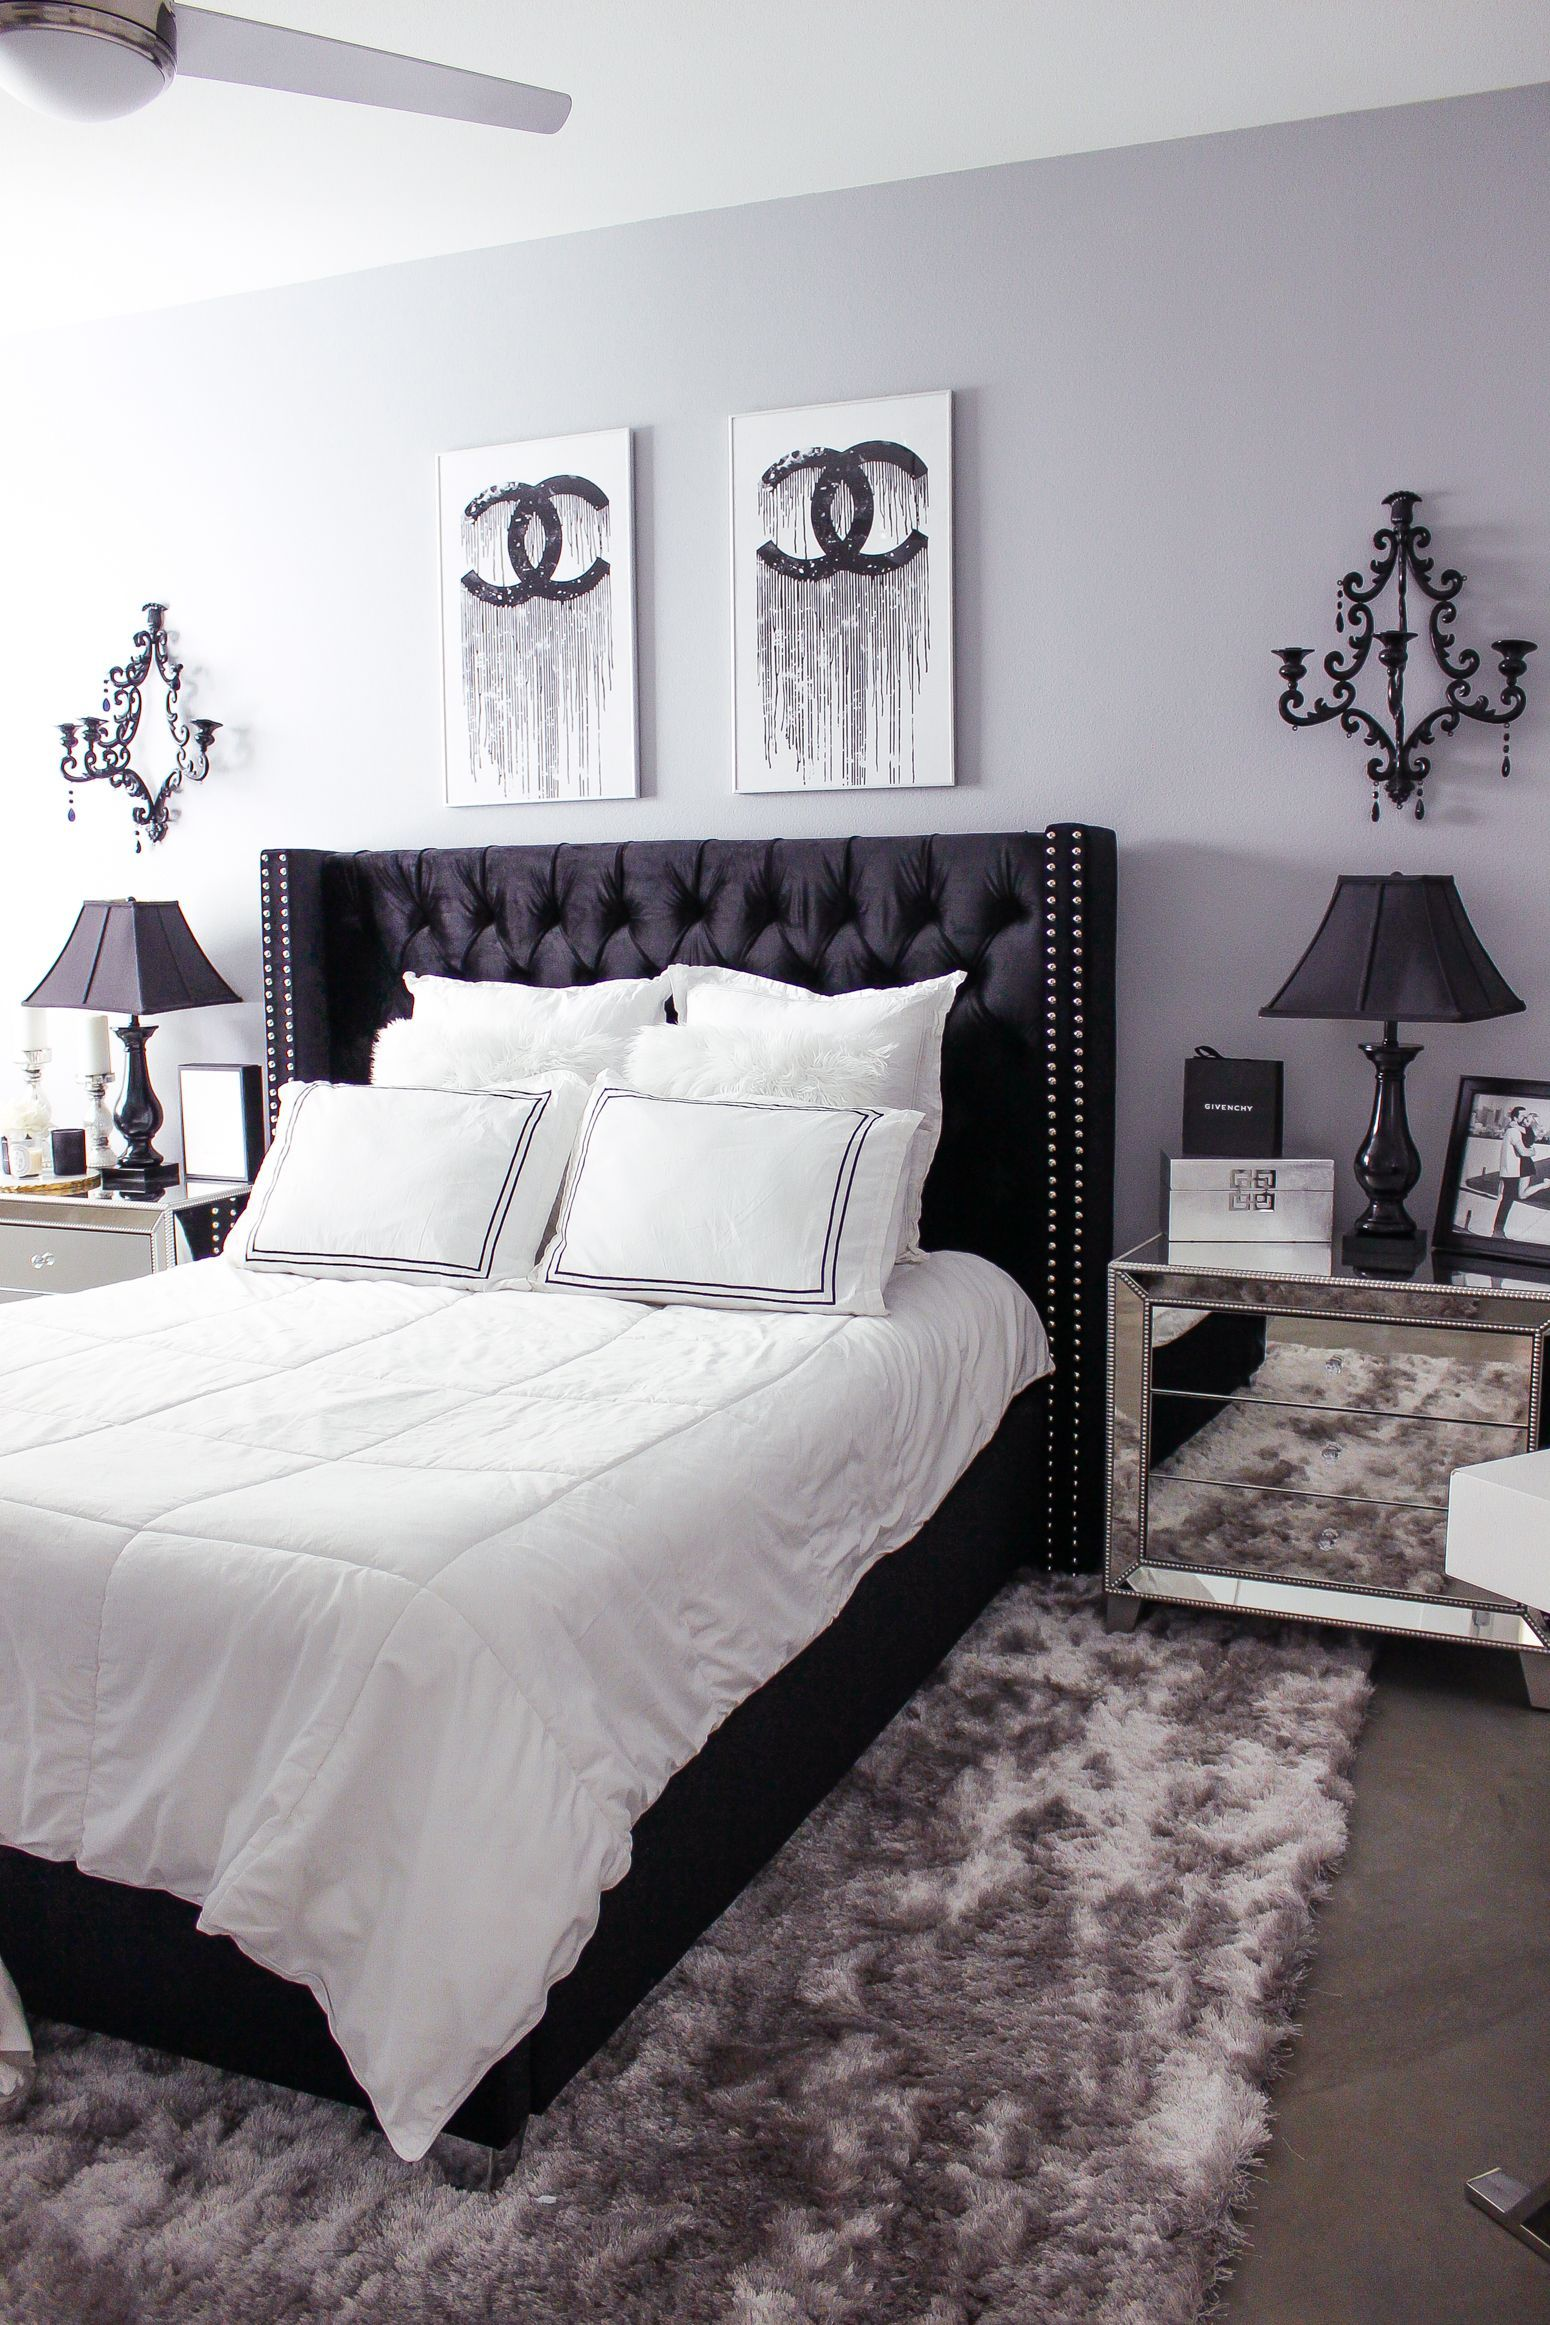 Black White Bedroom Decor Reveal White Bedroom Decor White Bedroom Design Apartment Bedroom Decor